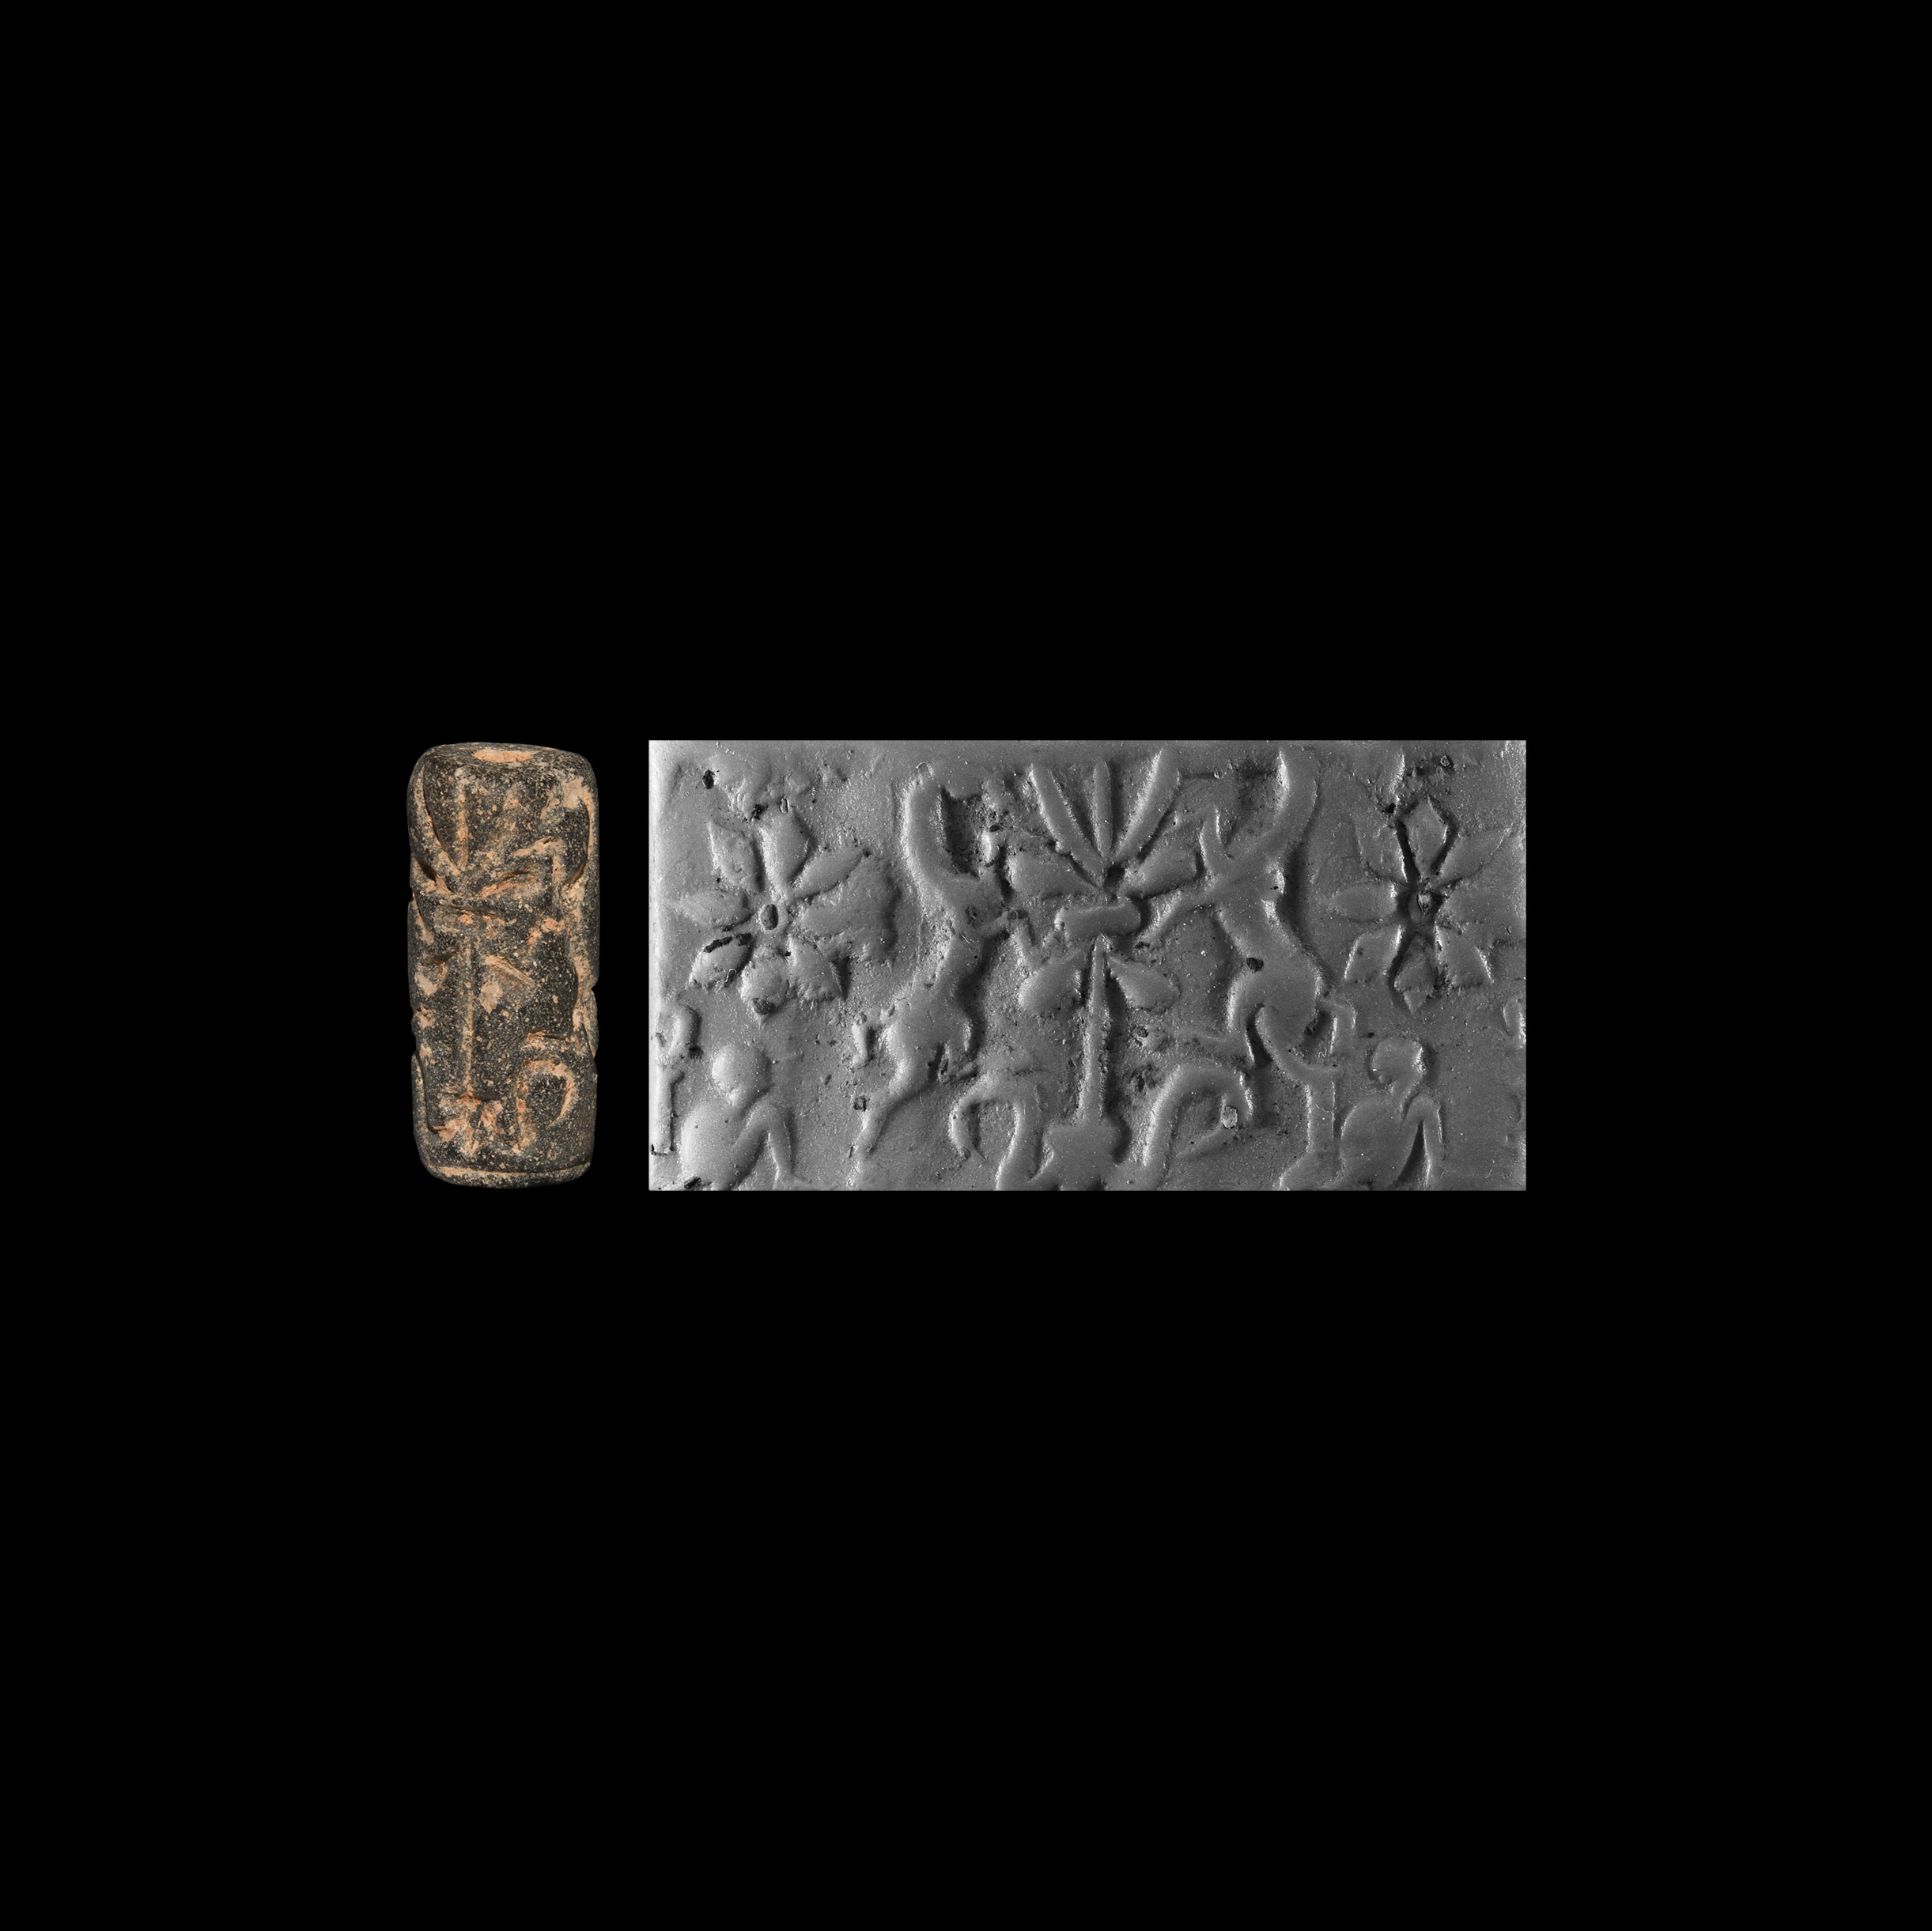 Western Asiatic Cylinder Seal with Gryphons